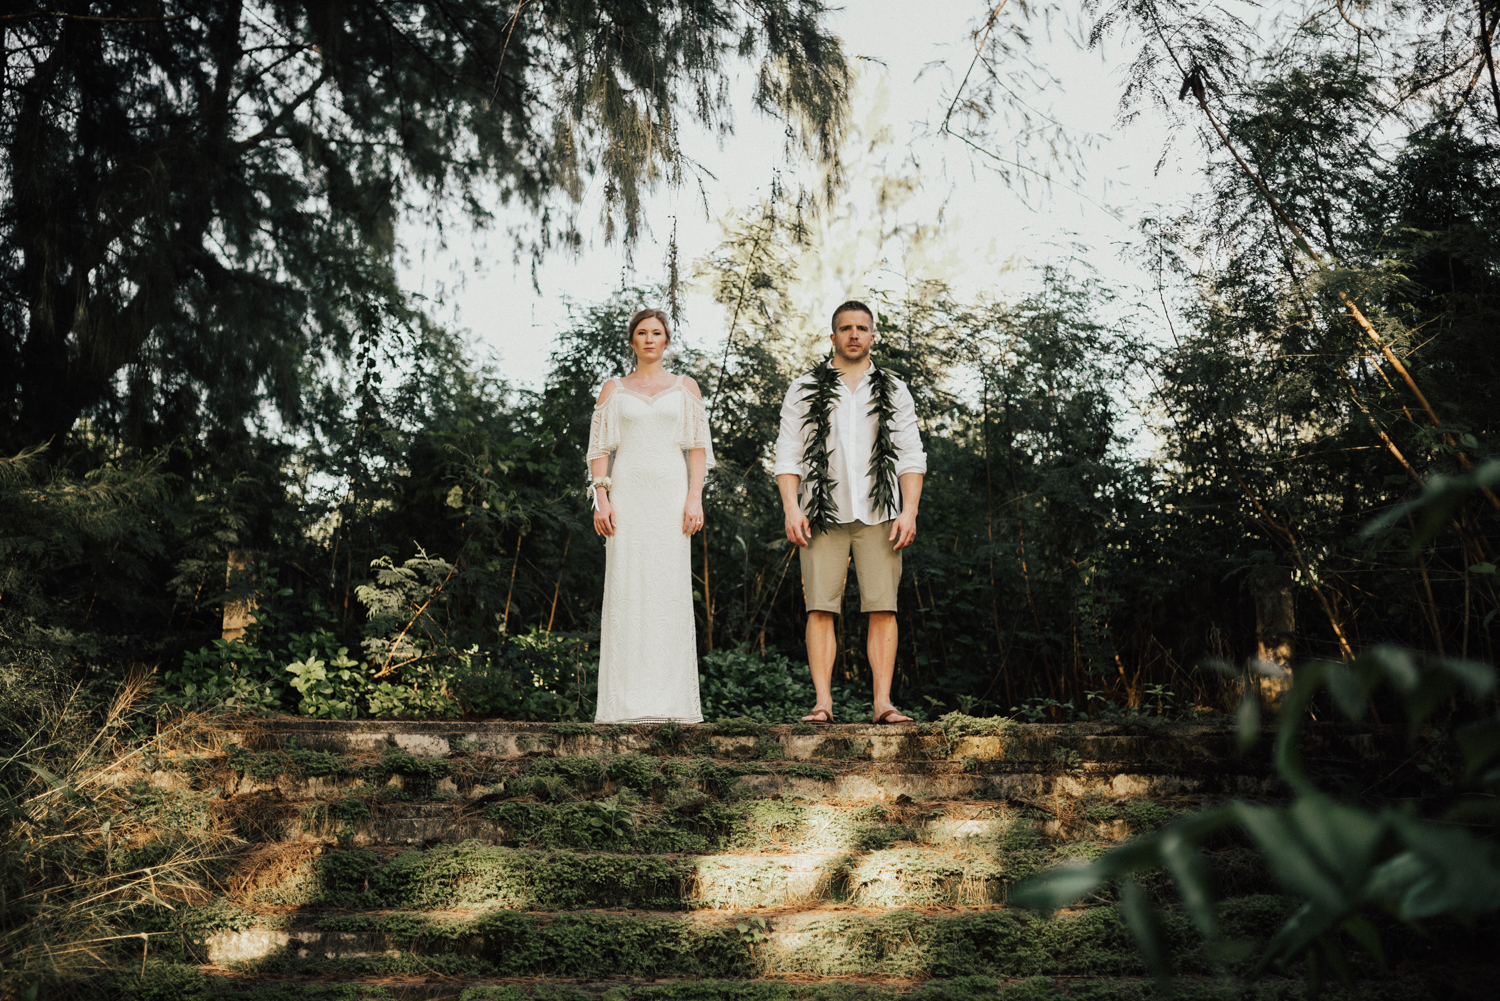 Kauai-elopement-photographer-63.jpg